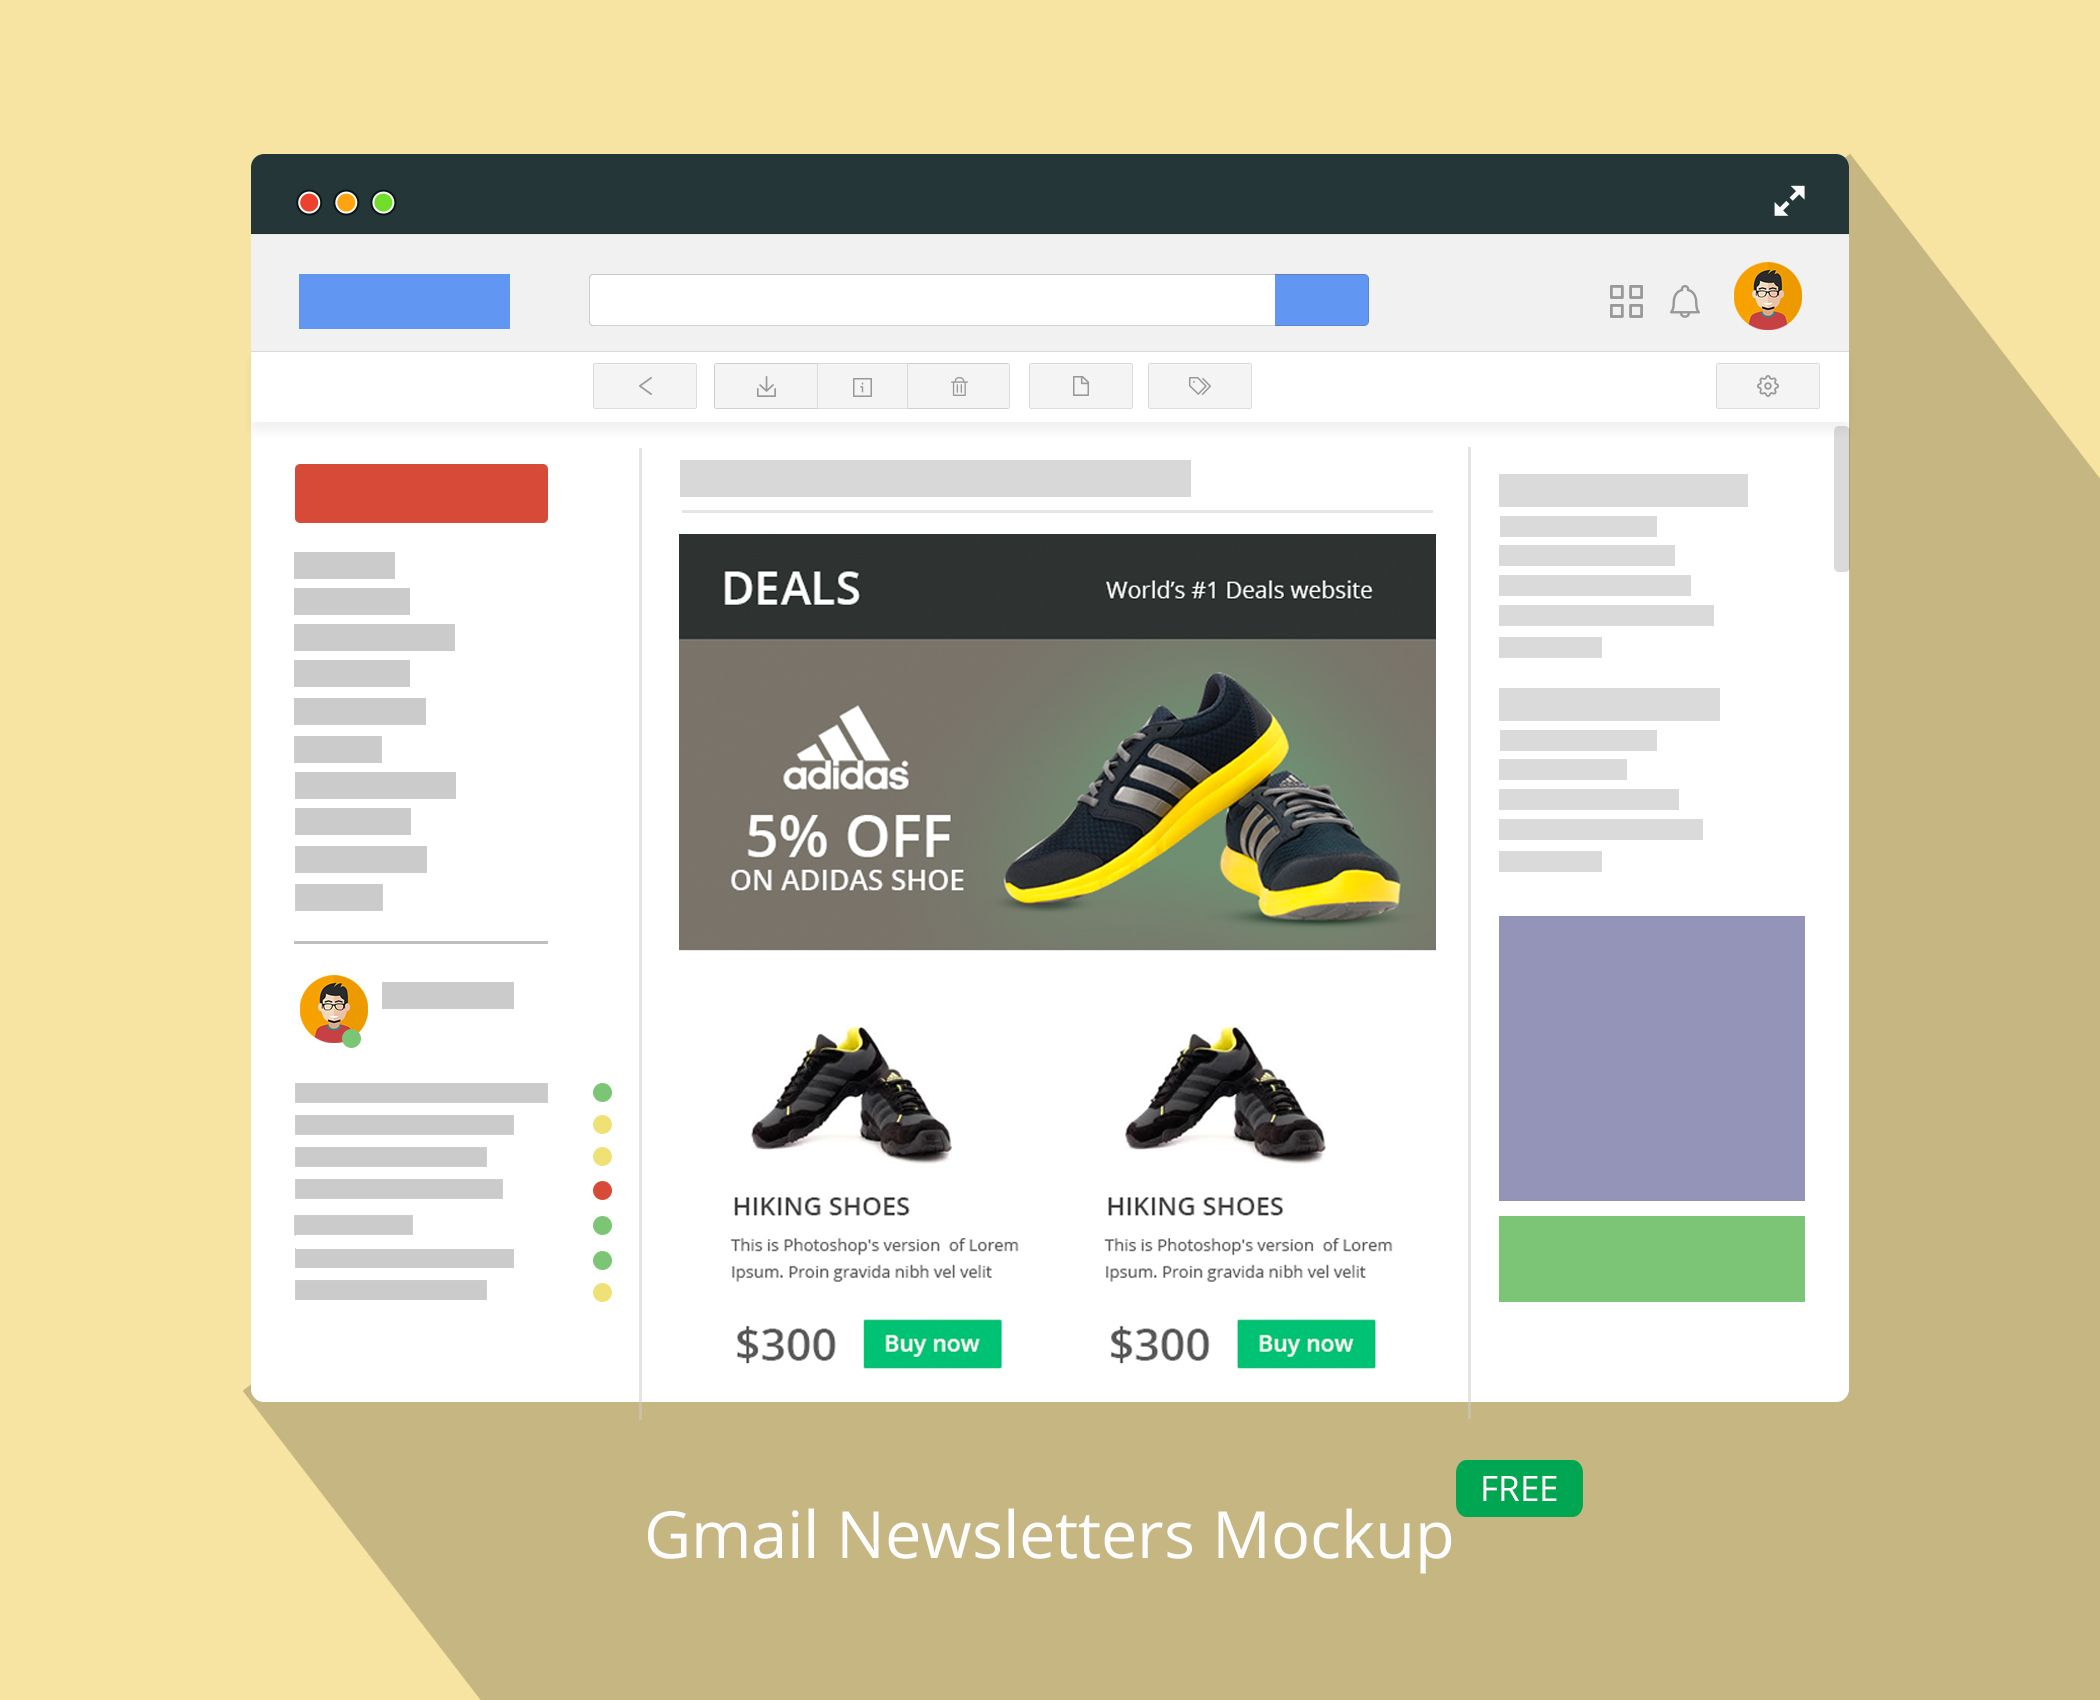 Mockup For Newsletter Templates In An Gmail Style Blogging